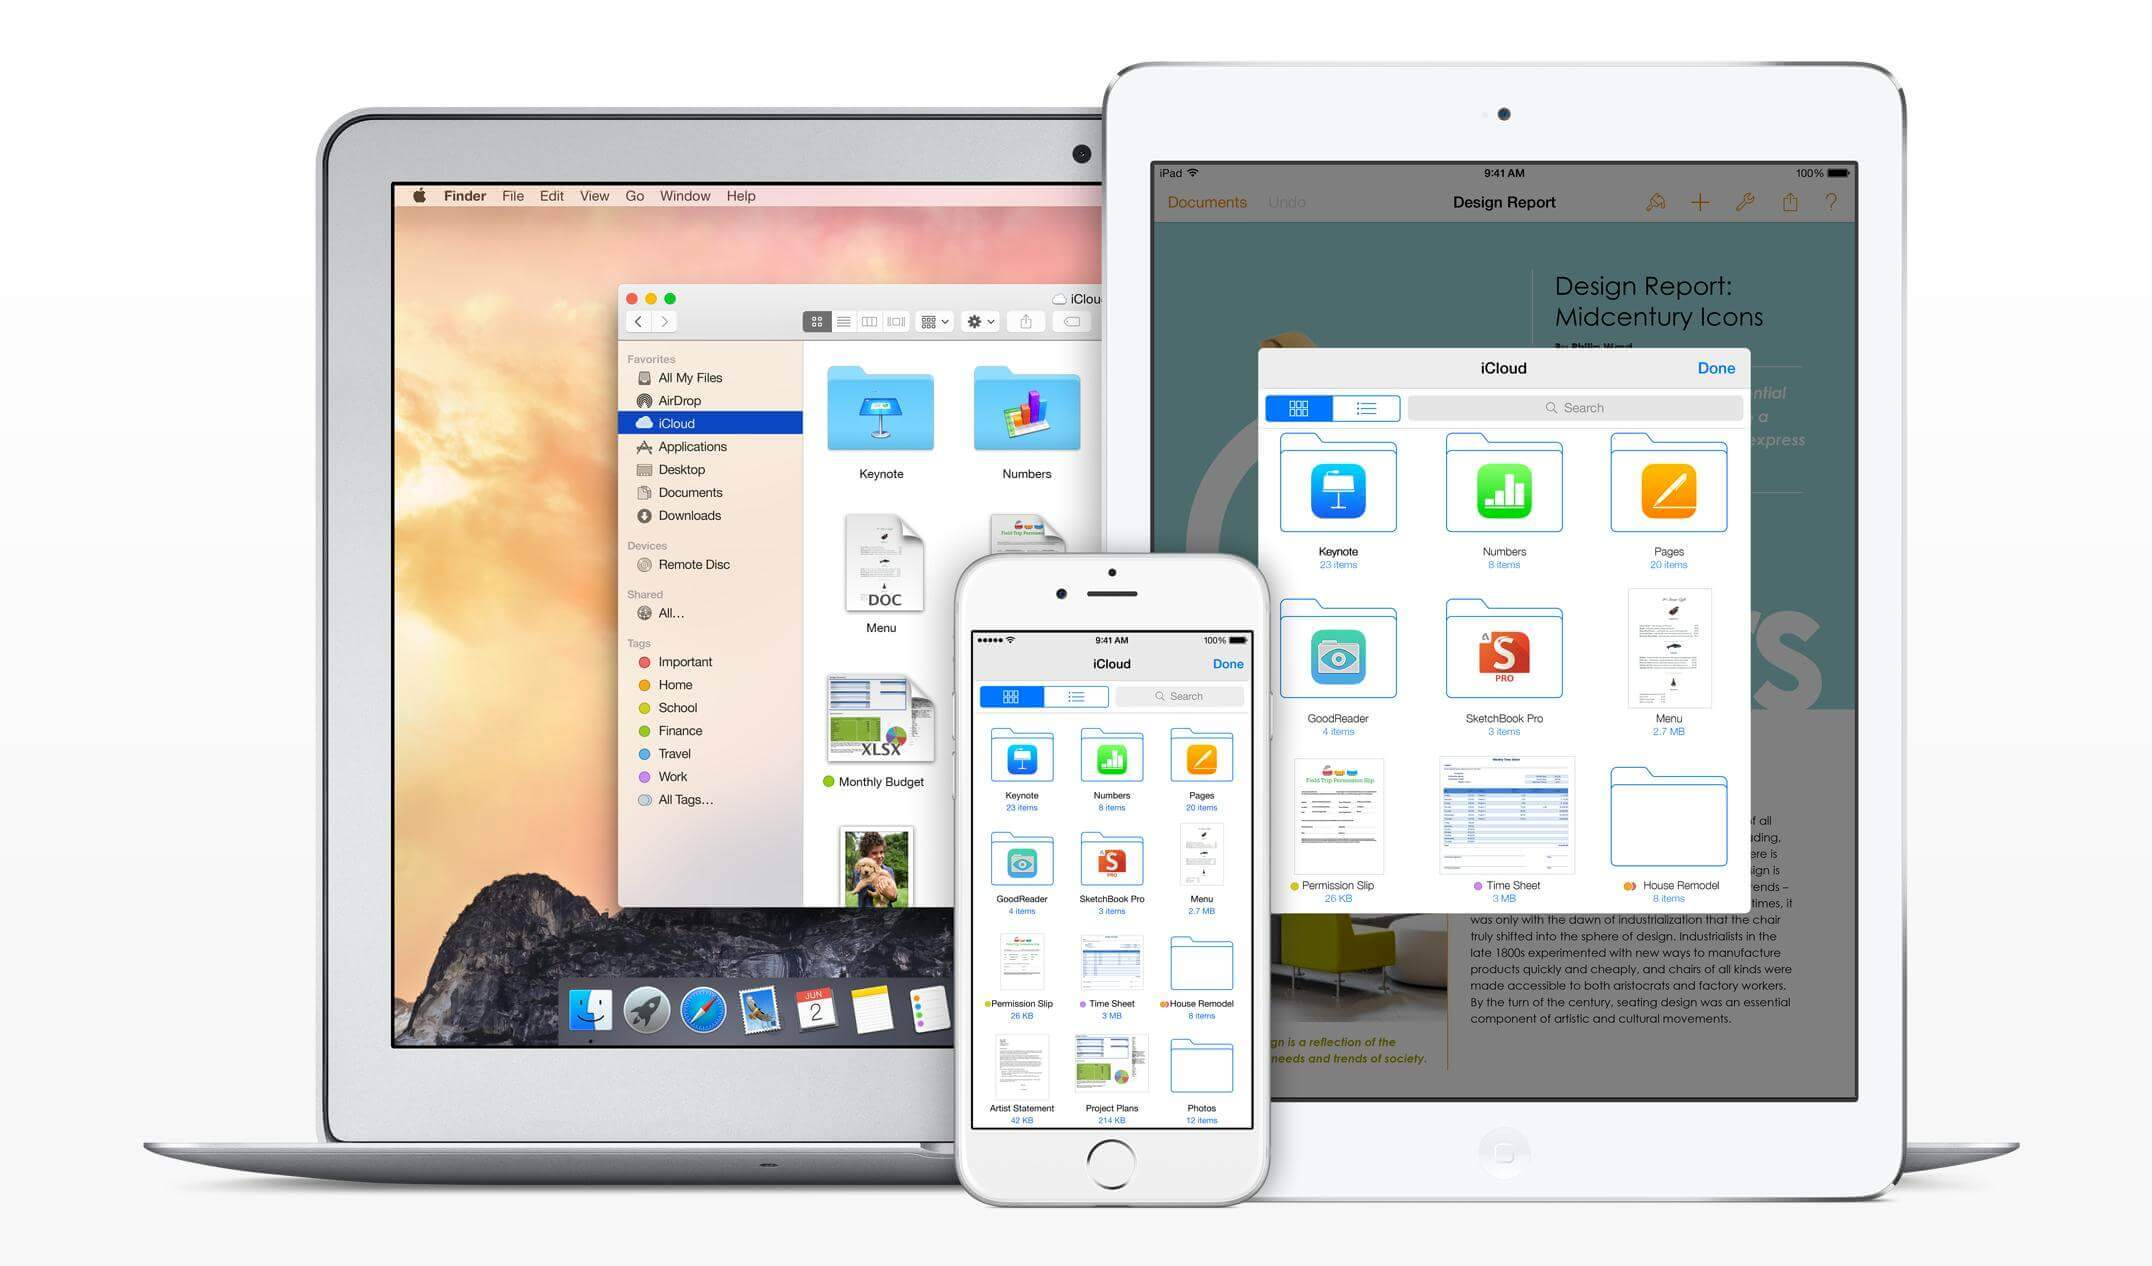 Apple iOS 9.2 beta 2 and OS X 10.11.2 beta 2